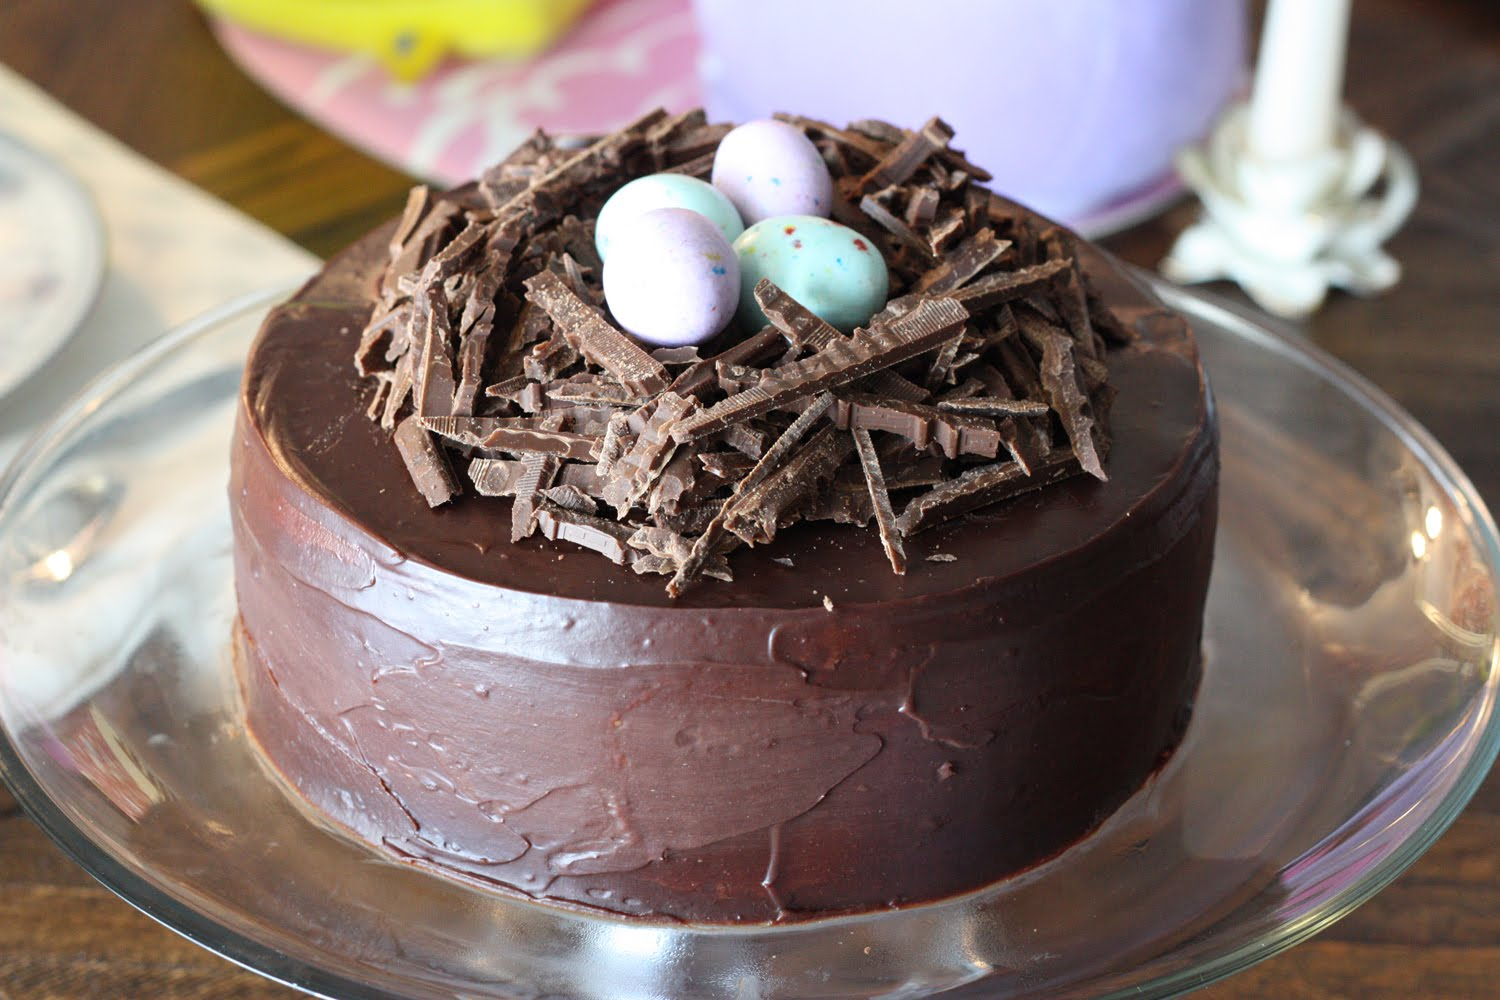 Chocolate Cake Designs Ideas